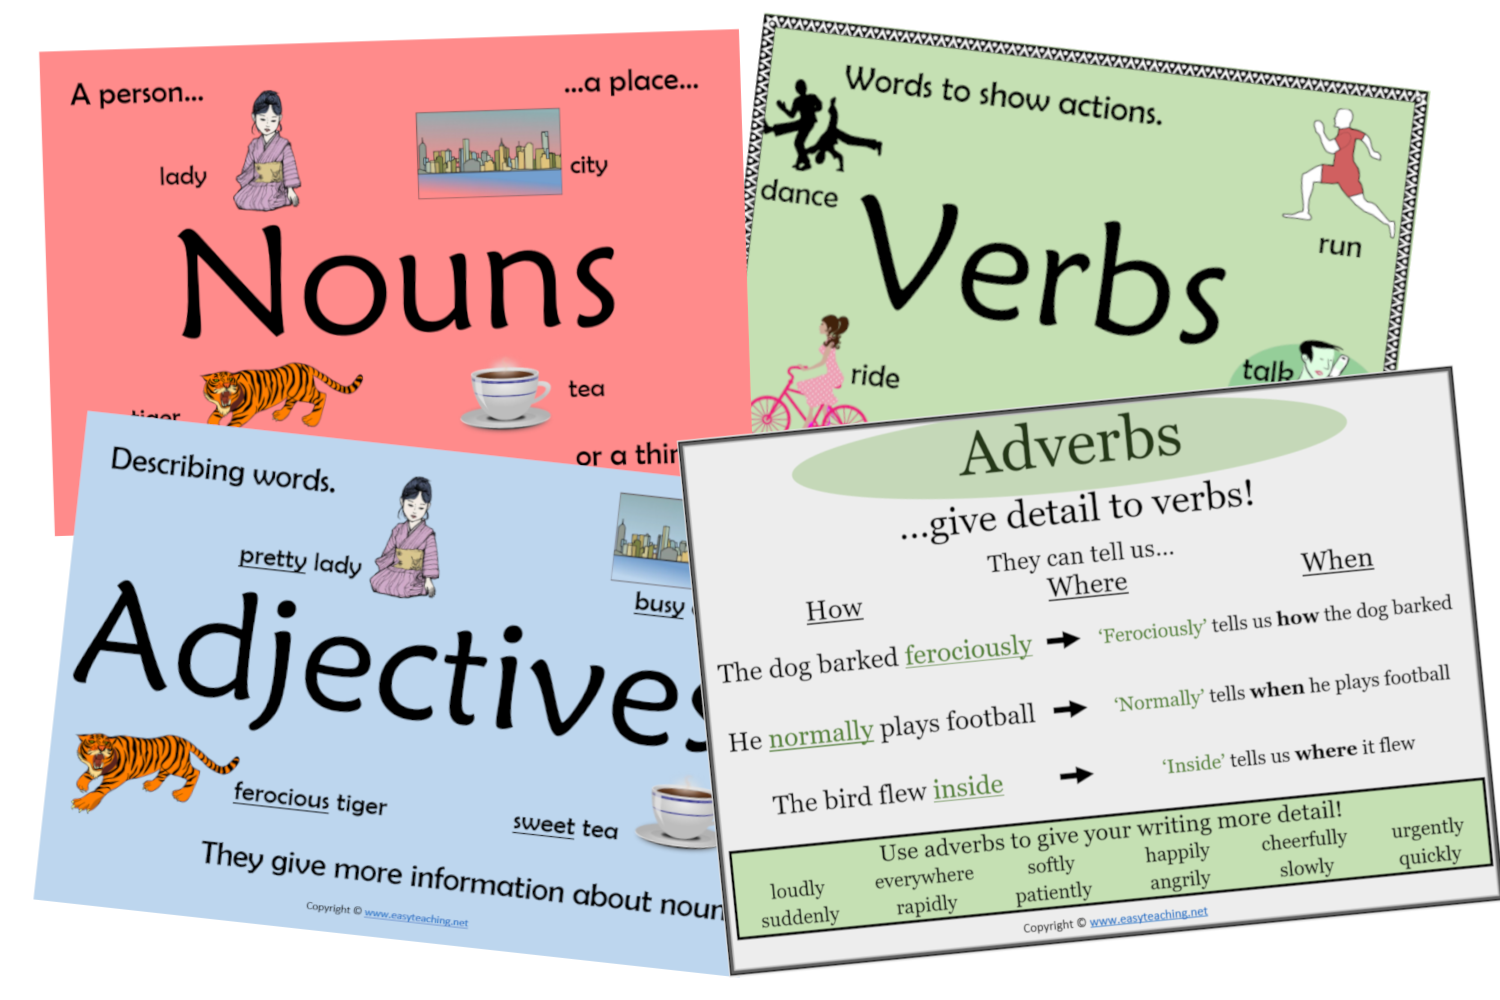 Nouns Verbs And Adjectives Posters For Display In The